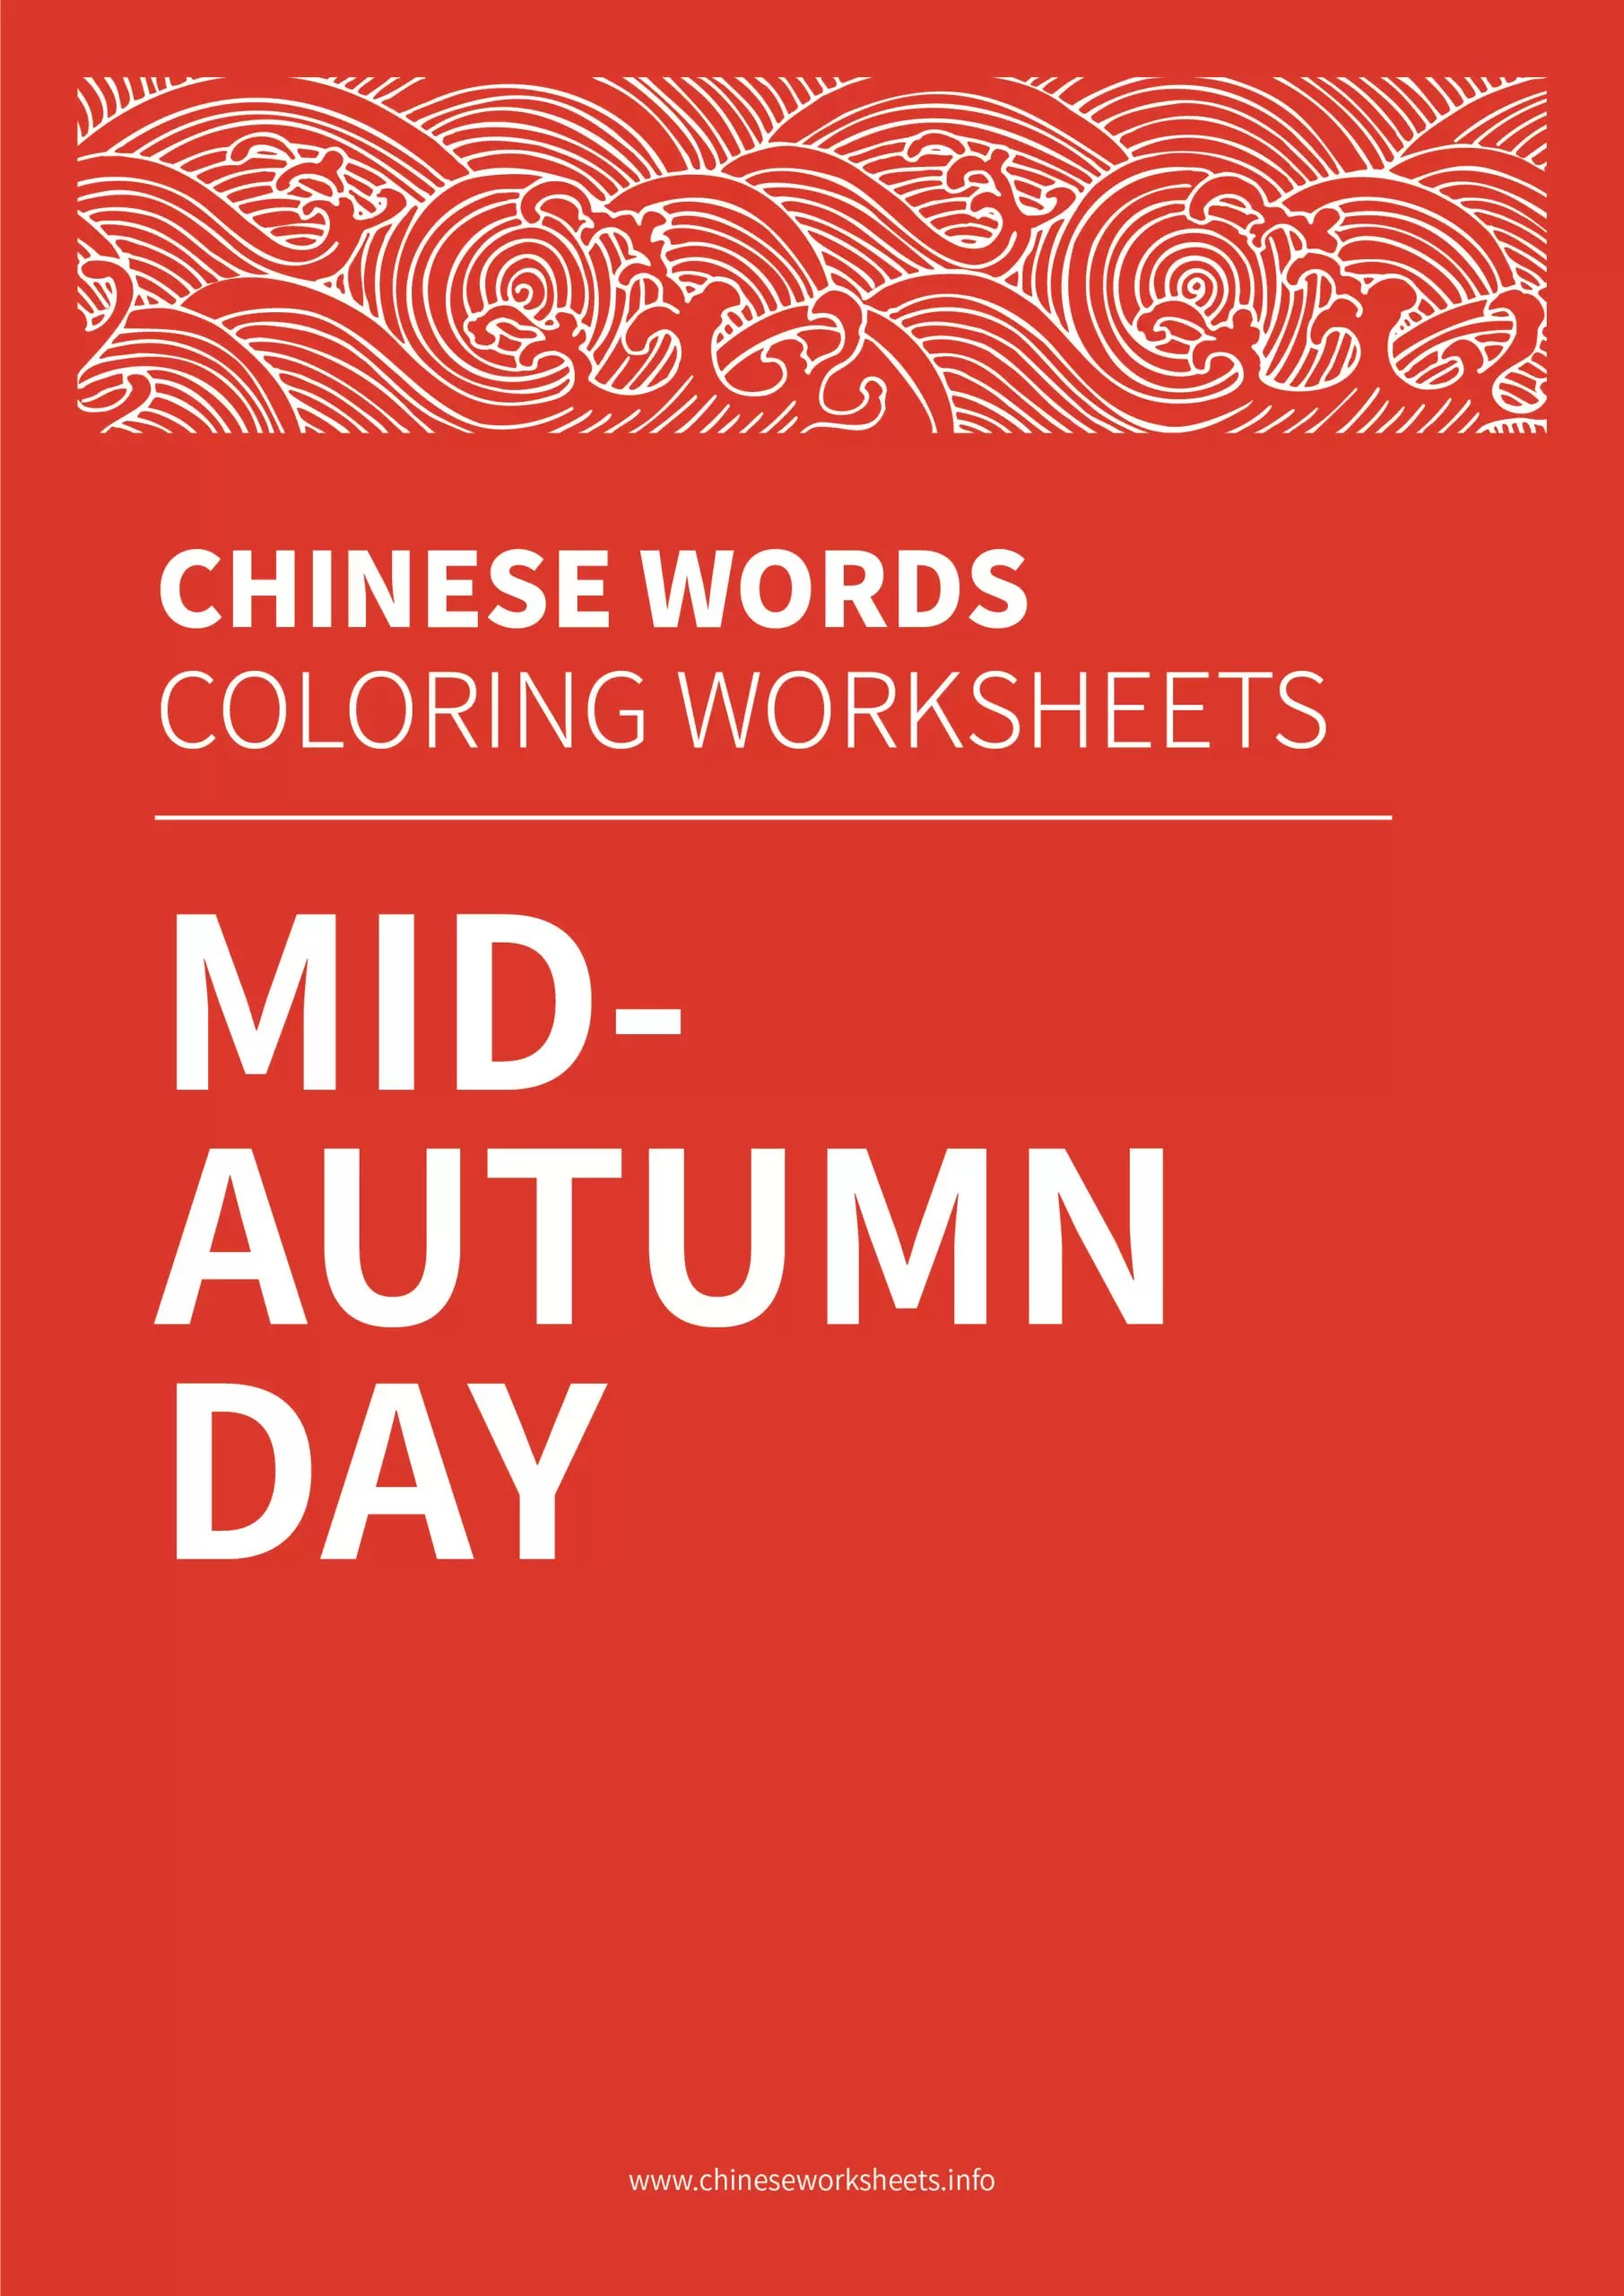 Chinese Words Coloring Worksheets Mid Autumn Day